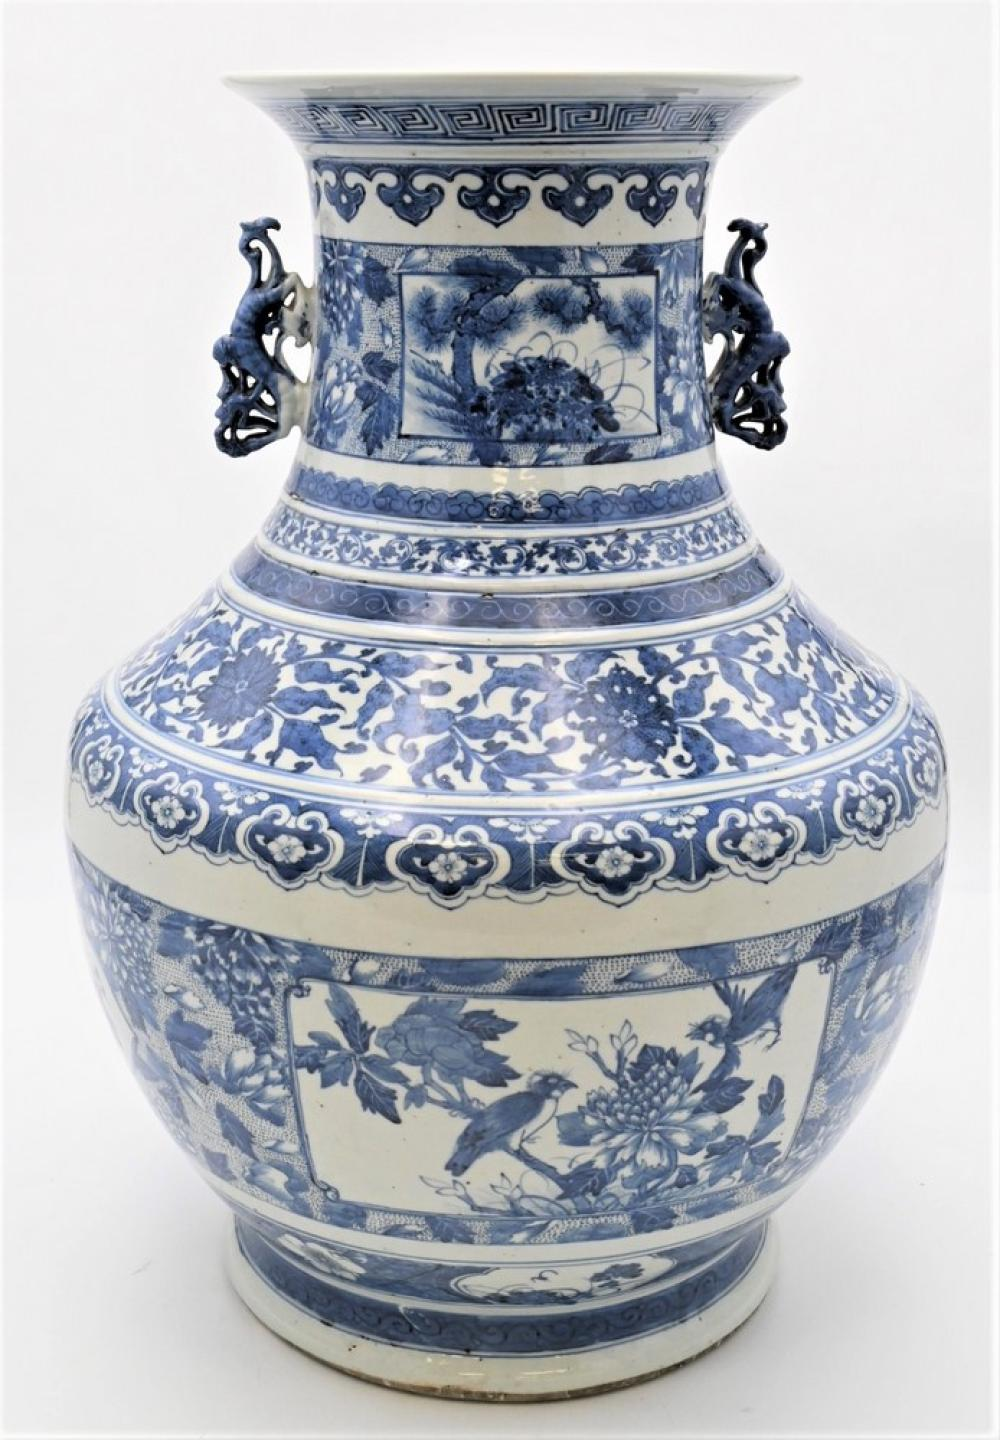 Large Chinese Blue and White Urnhaving flared rim over dragon handles with bulbous body, painted flowers and panel scenes with bir...